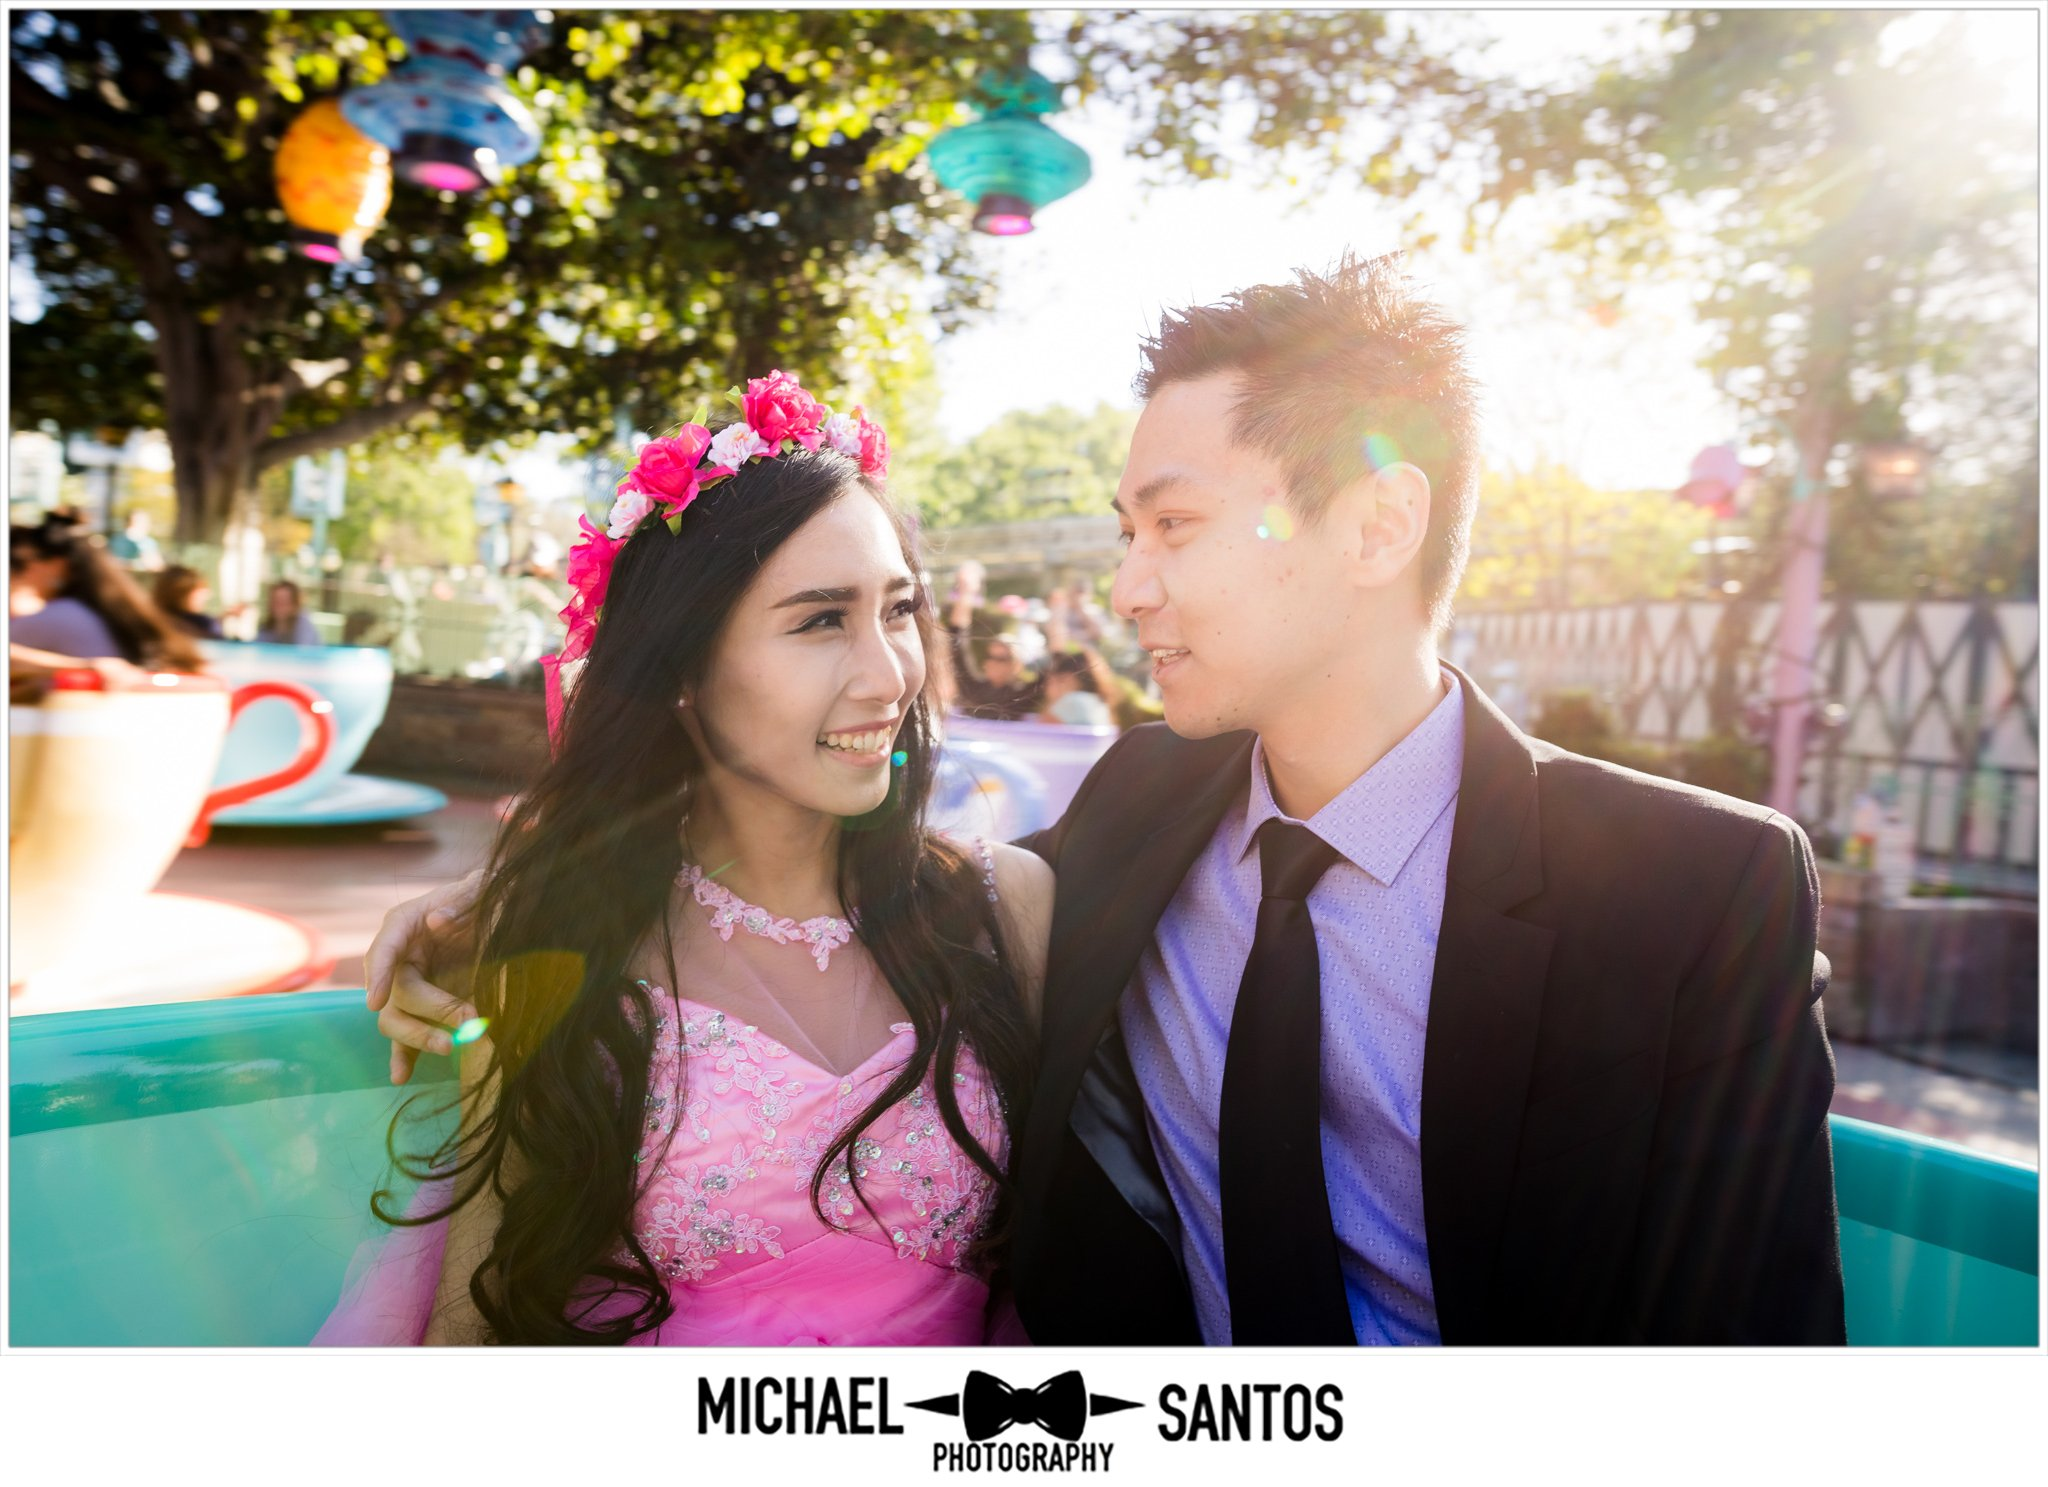 couple on teacups during engagement session at disneyland